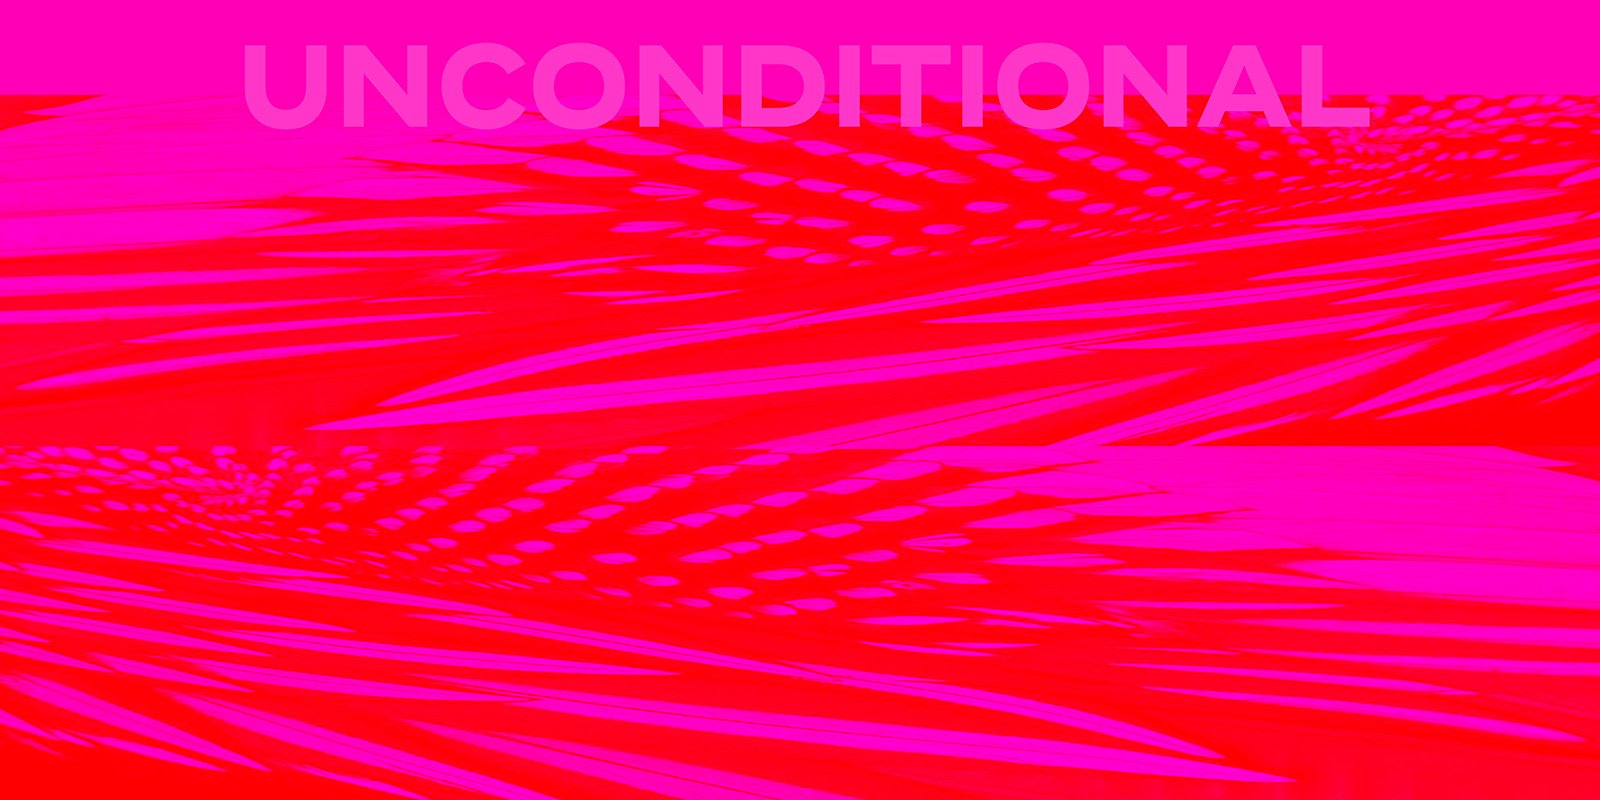 D/Luca Feather Unconditional Fire - Artwork